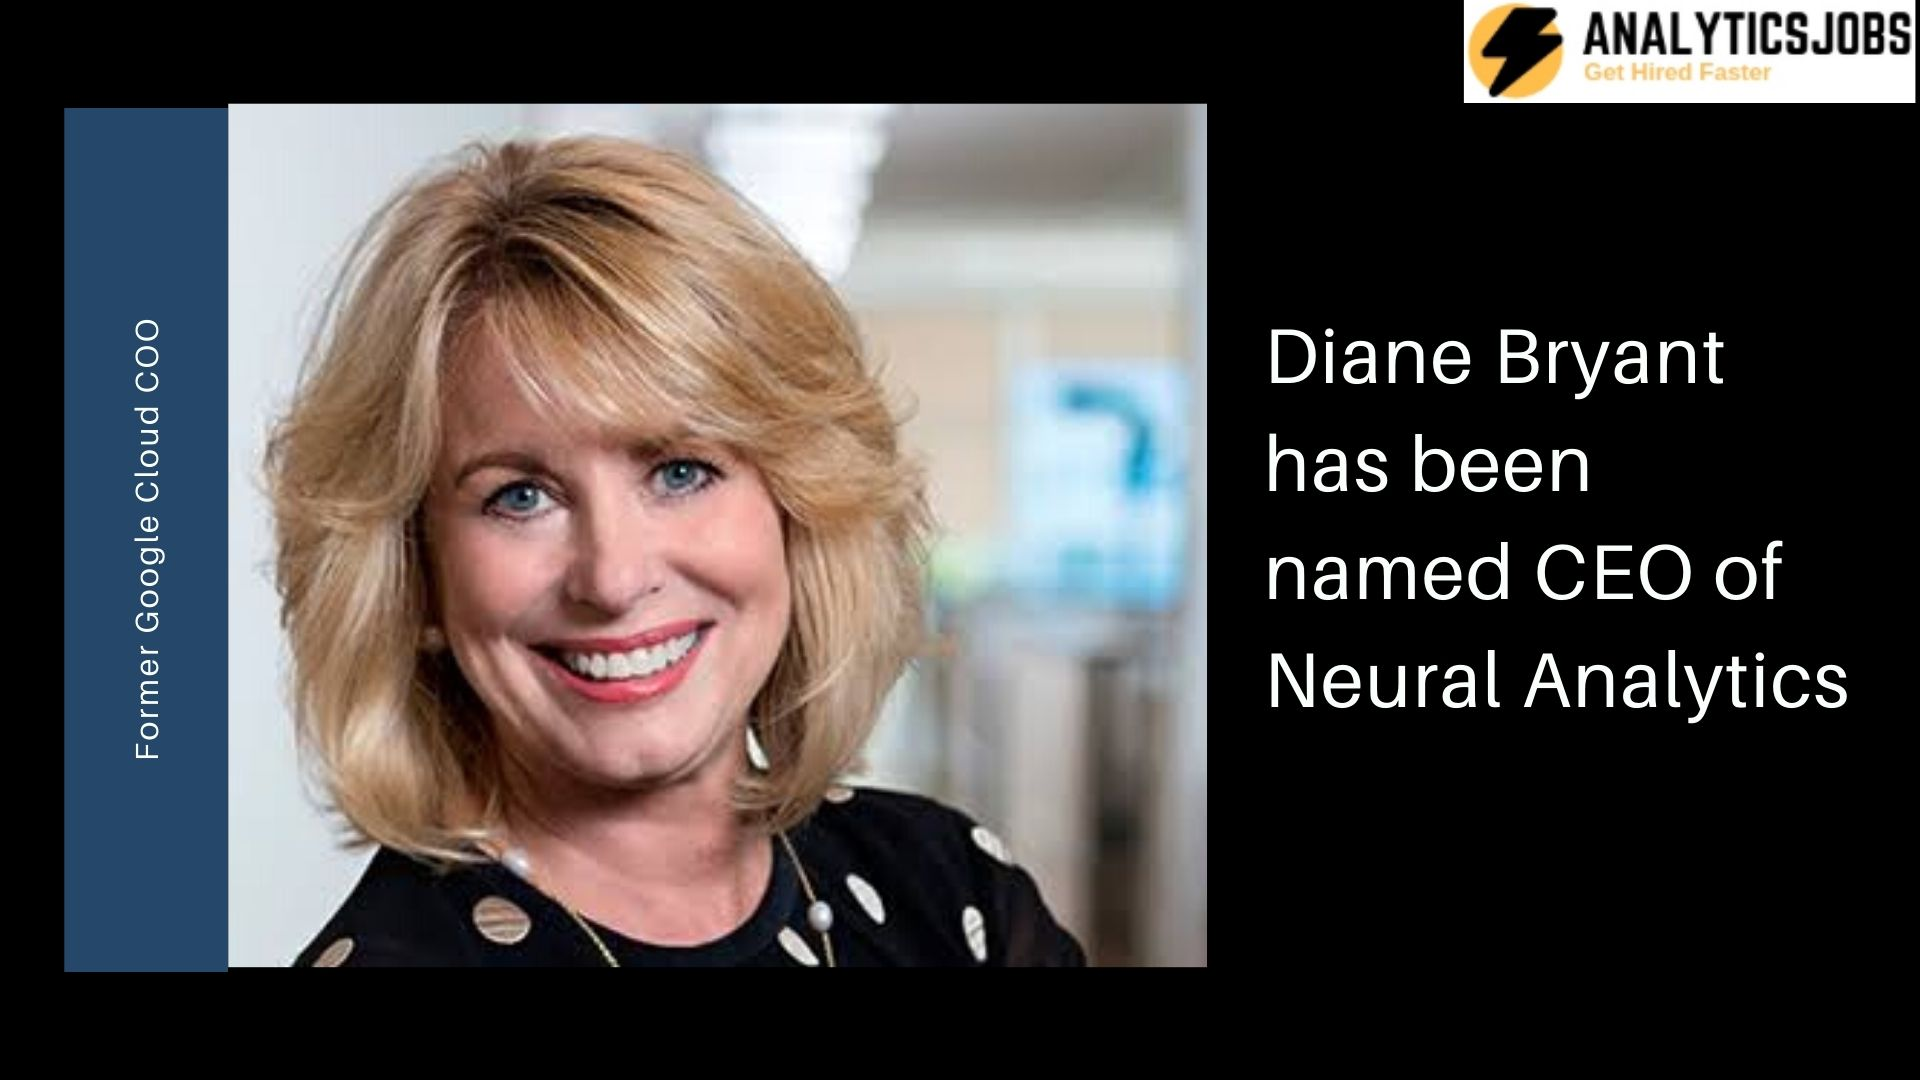 Neural Analytics has appointed Former Google Cloud COO Diane Bryant as the chairman and CEO